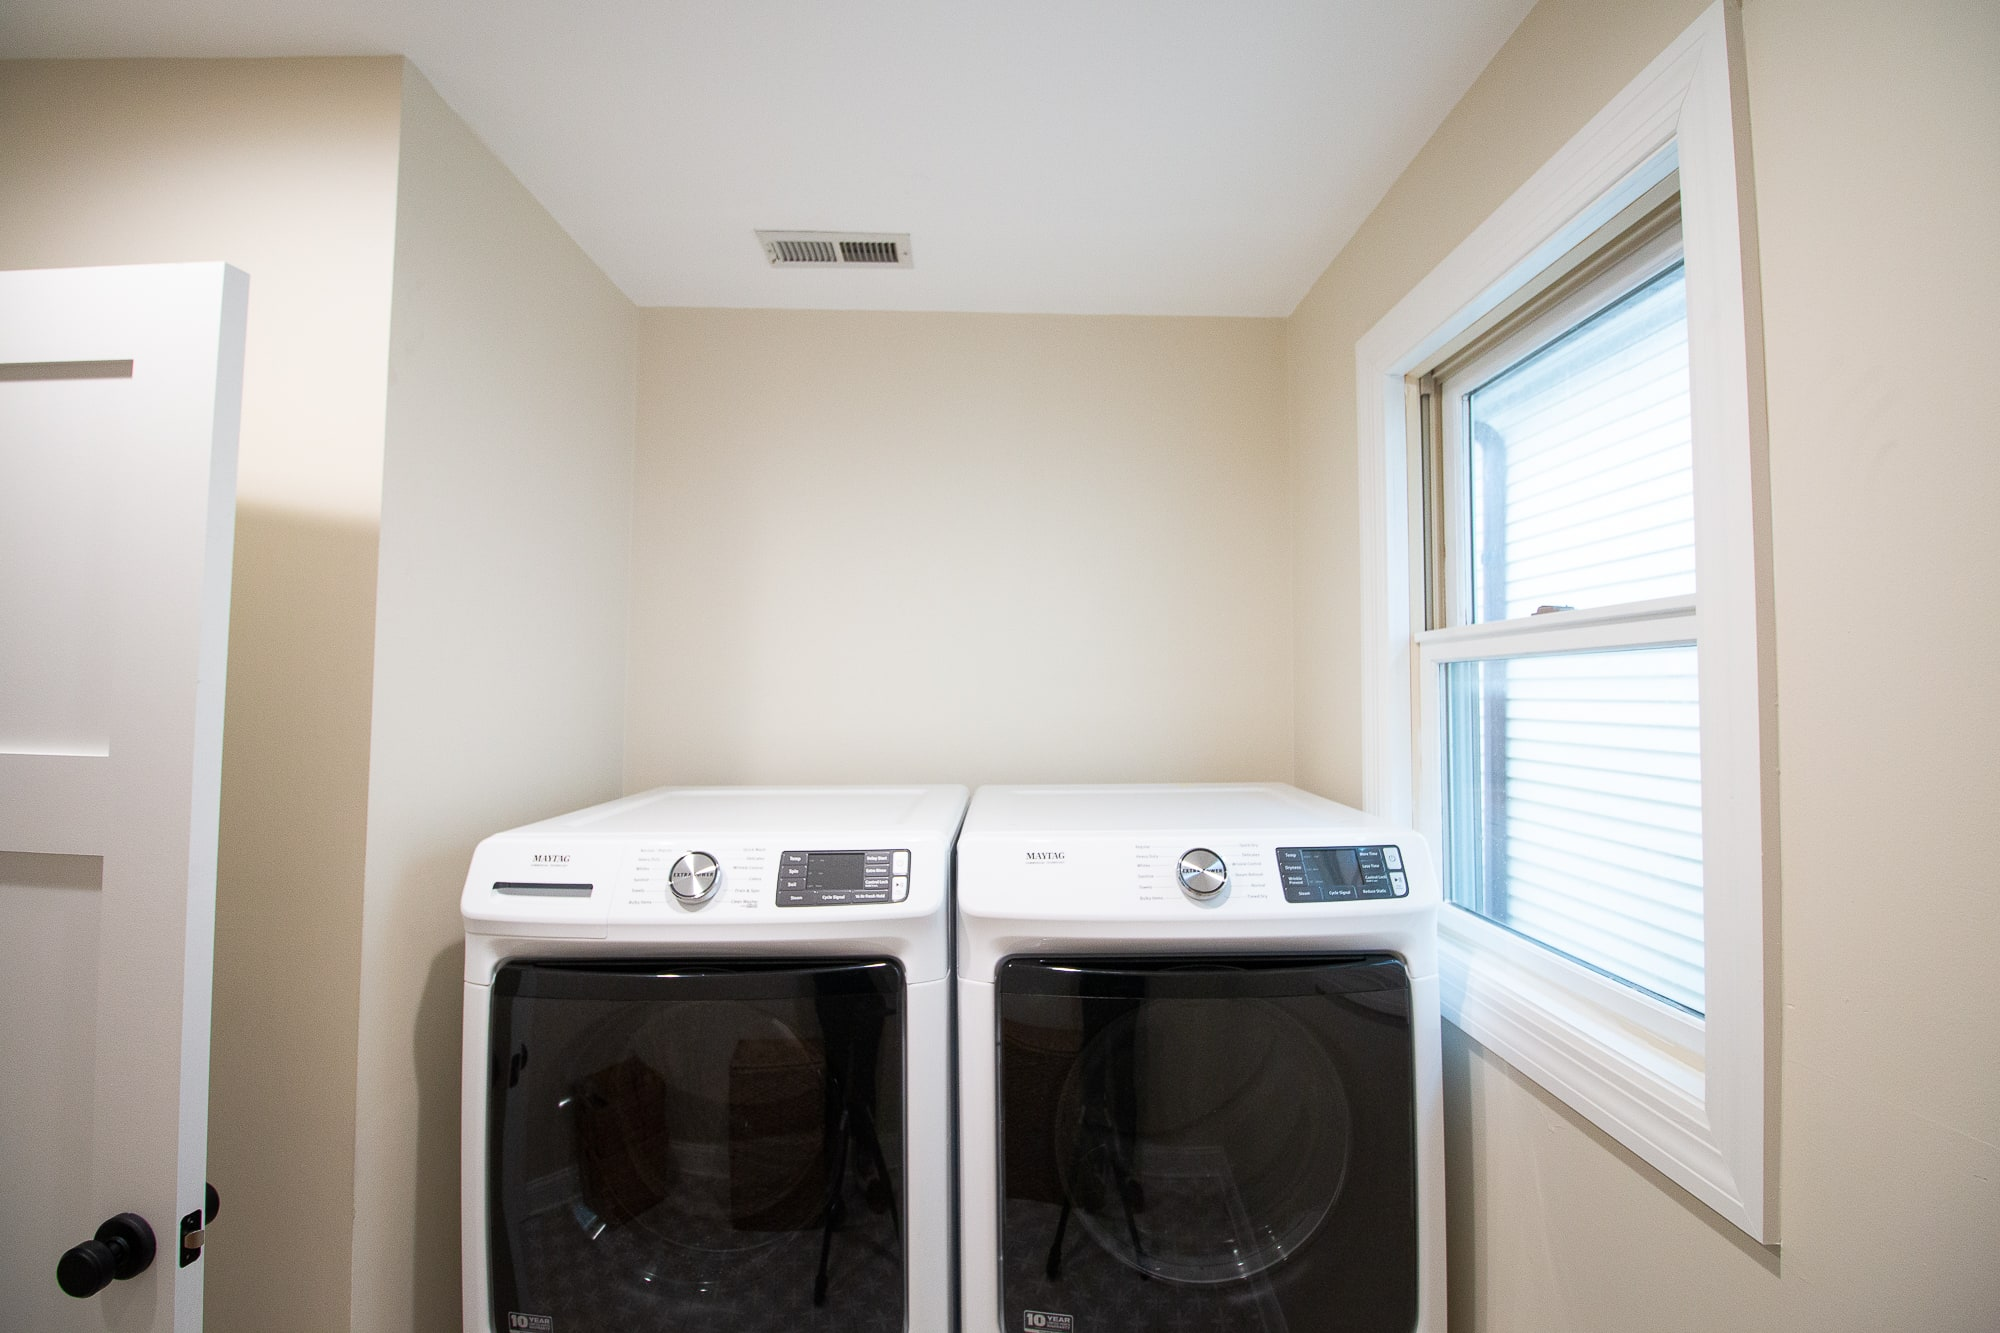 Over the washer and dryer